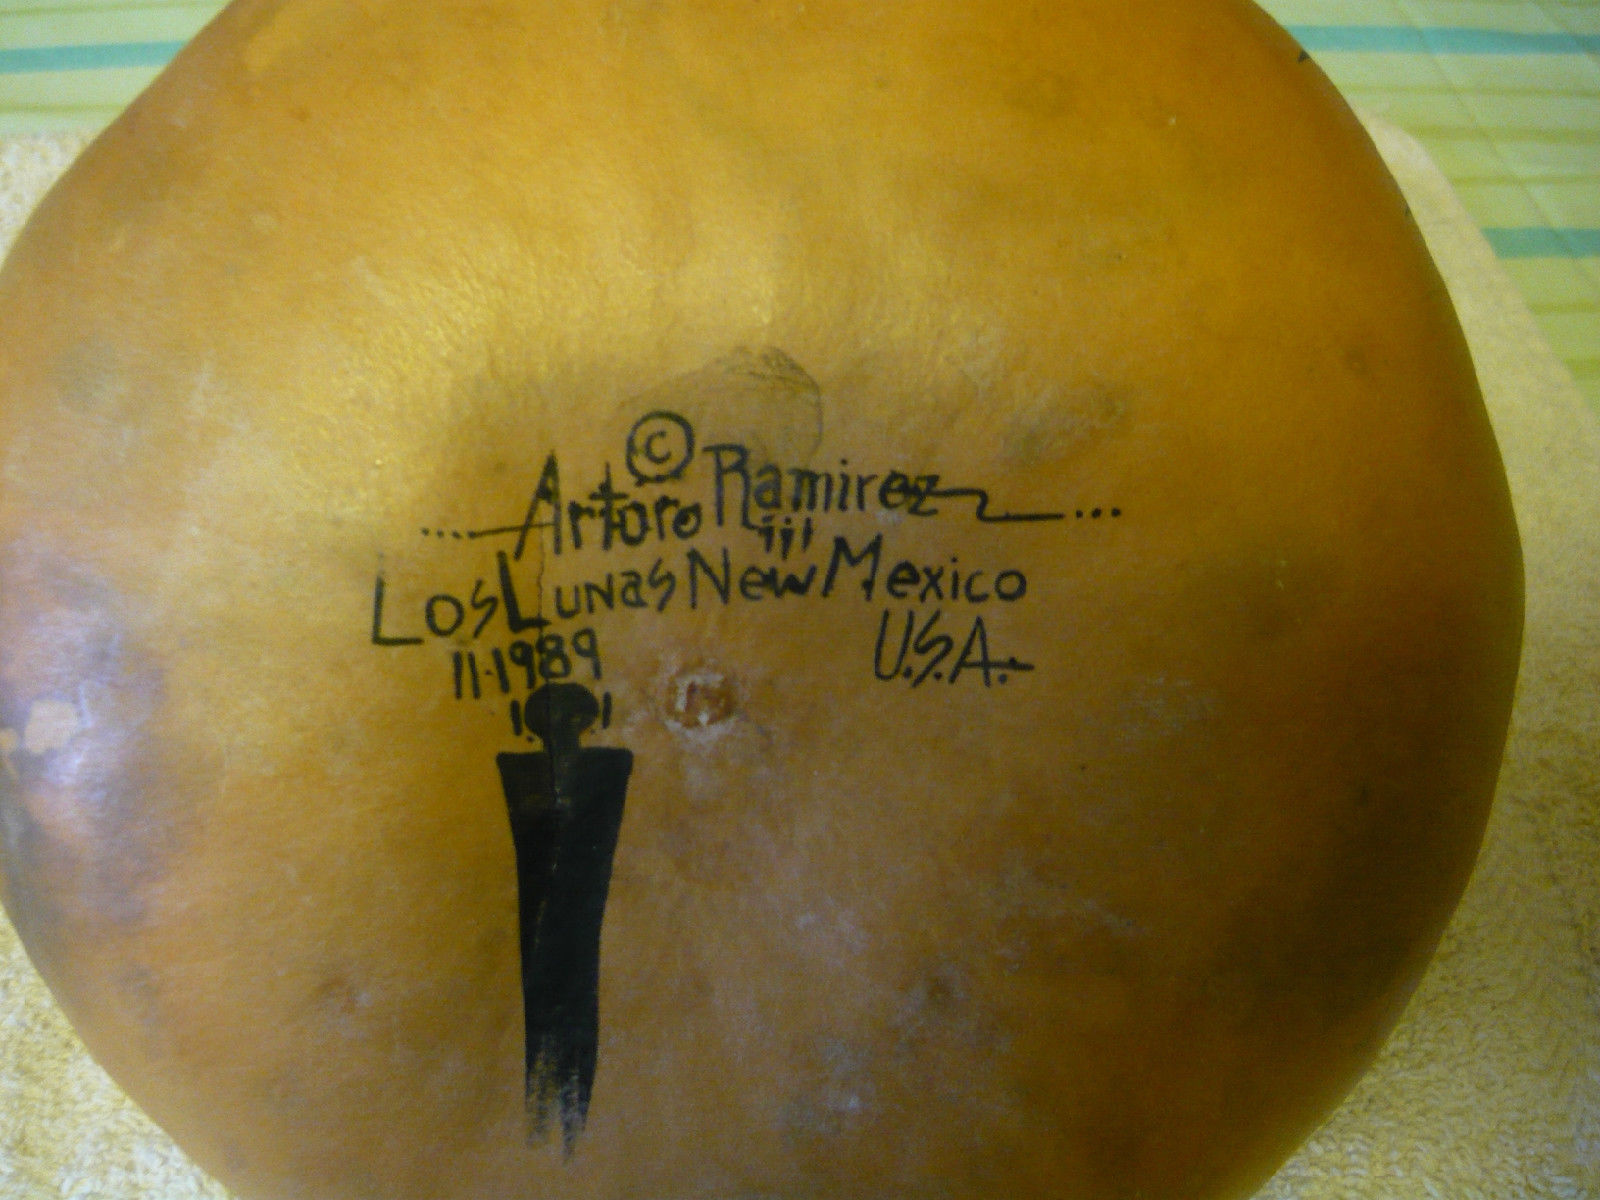 Arturo Ramirez Hand Painted Gourd (c.1989), photo 1